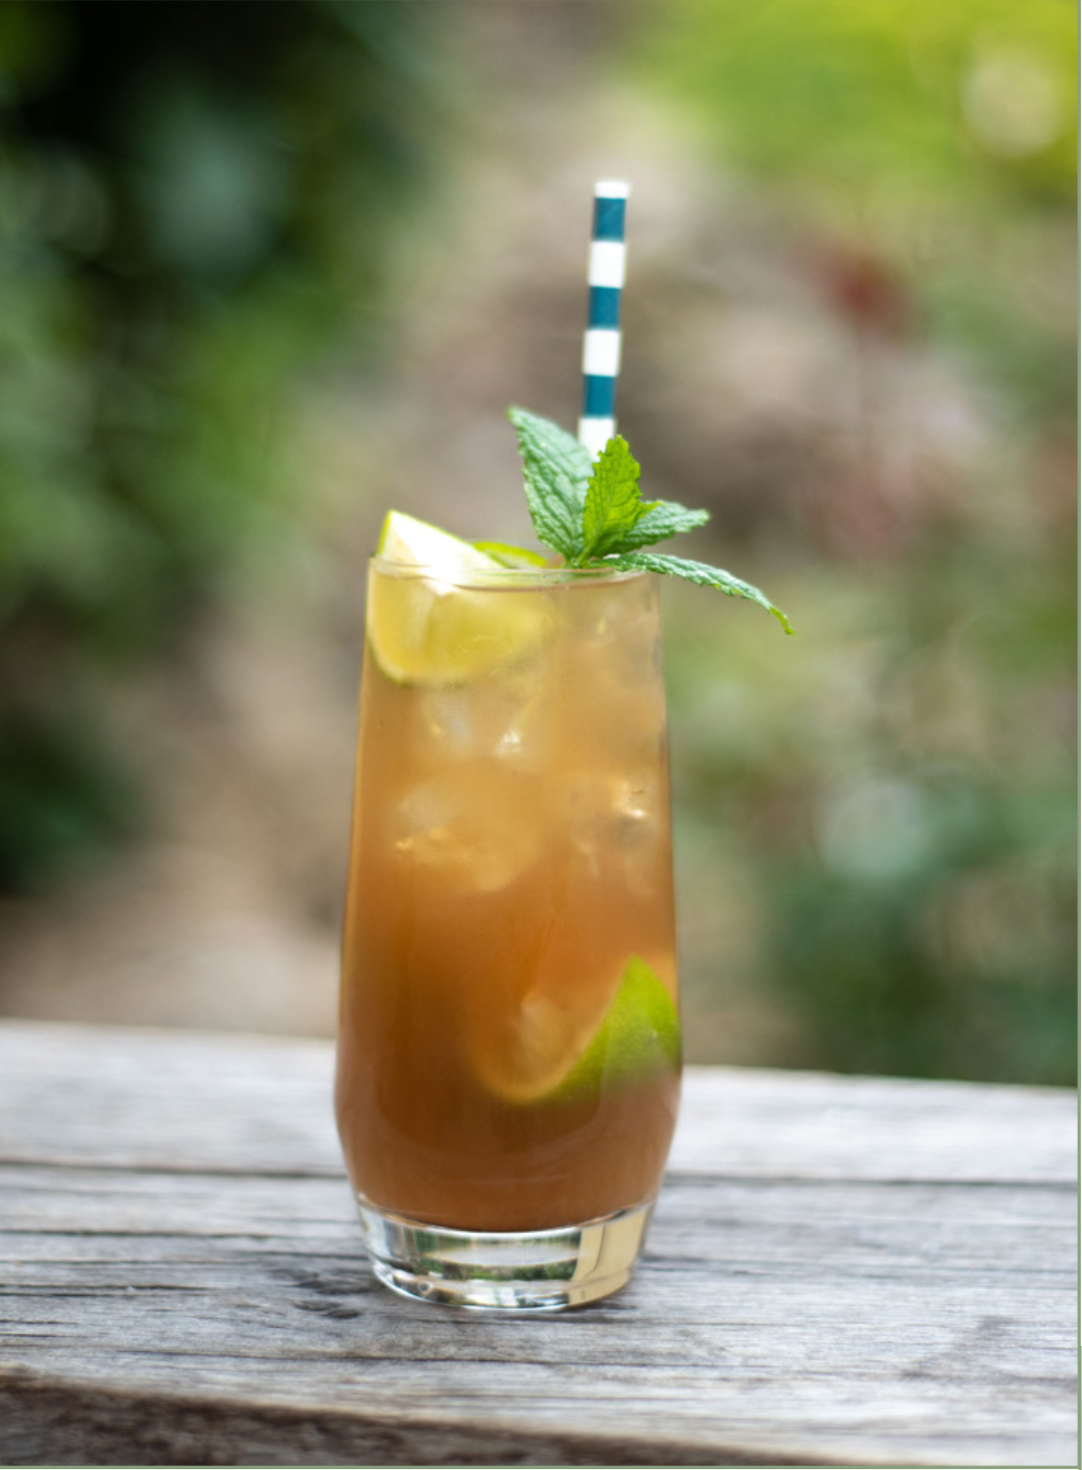 Dark n stormy, walkham stormy, cocktail, signature drink, wedding cocktails, inspired, ever after, lower grenofen, river walkham, fresh lime, fresh mint